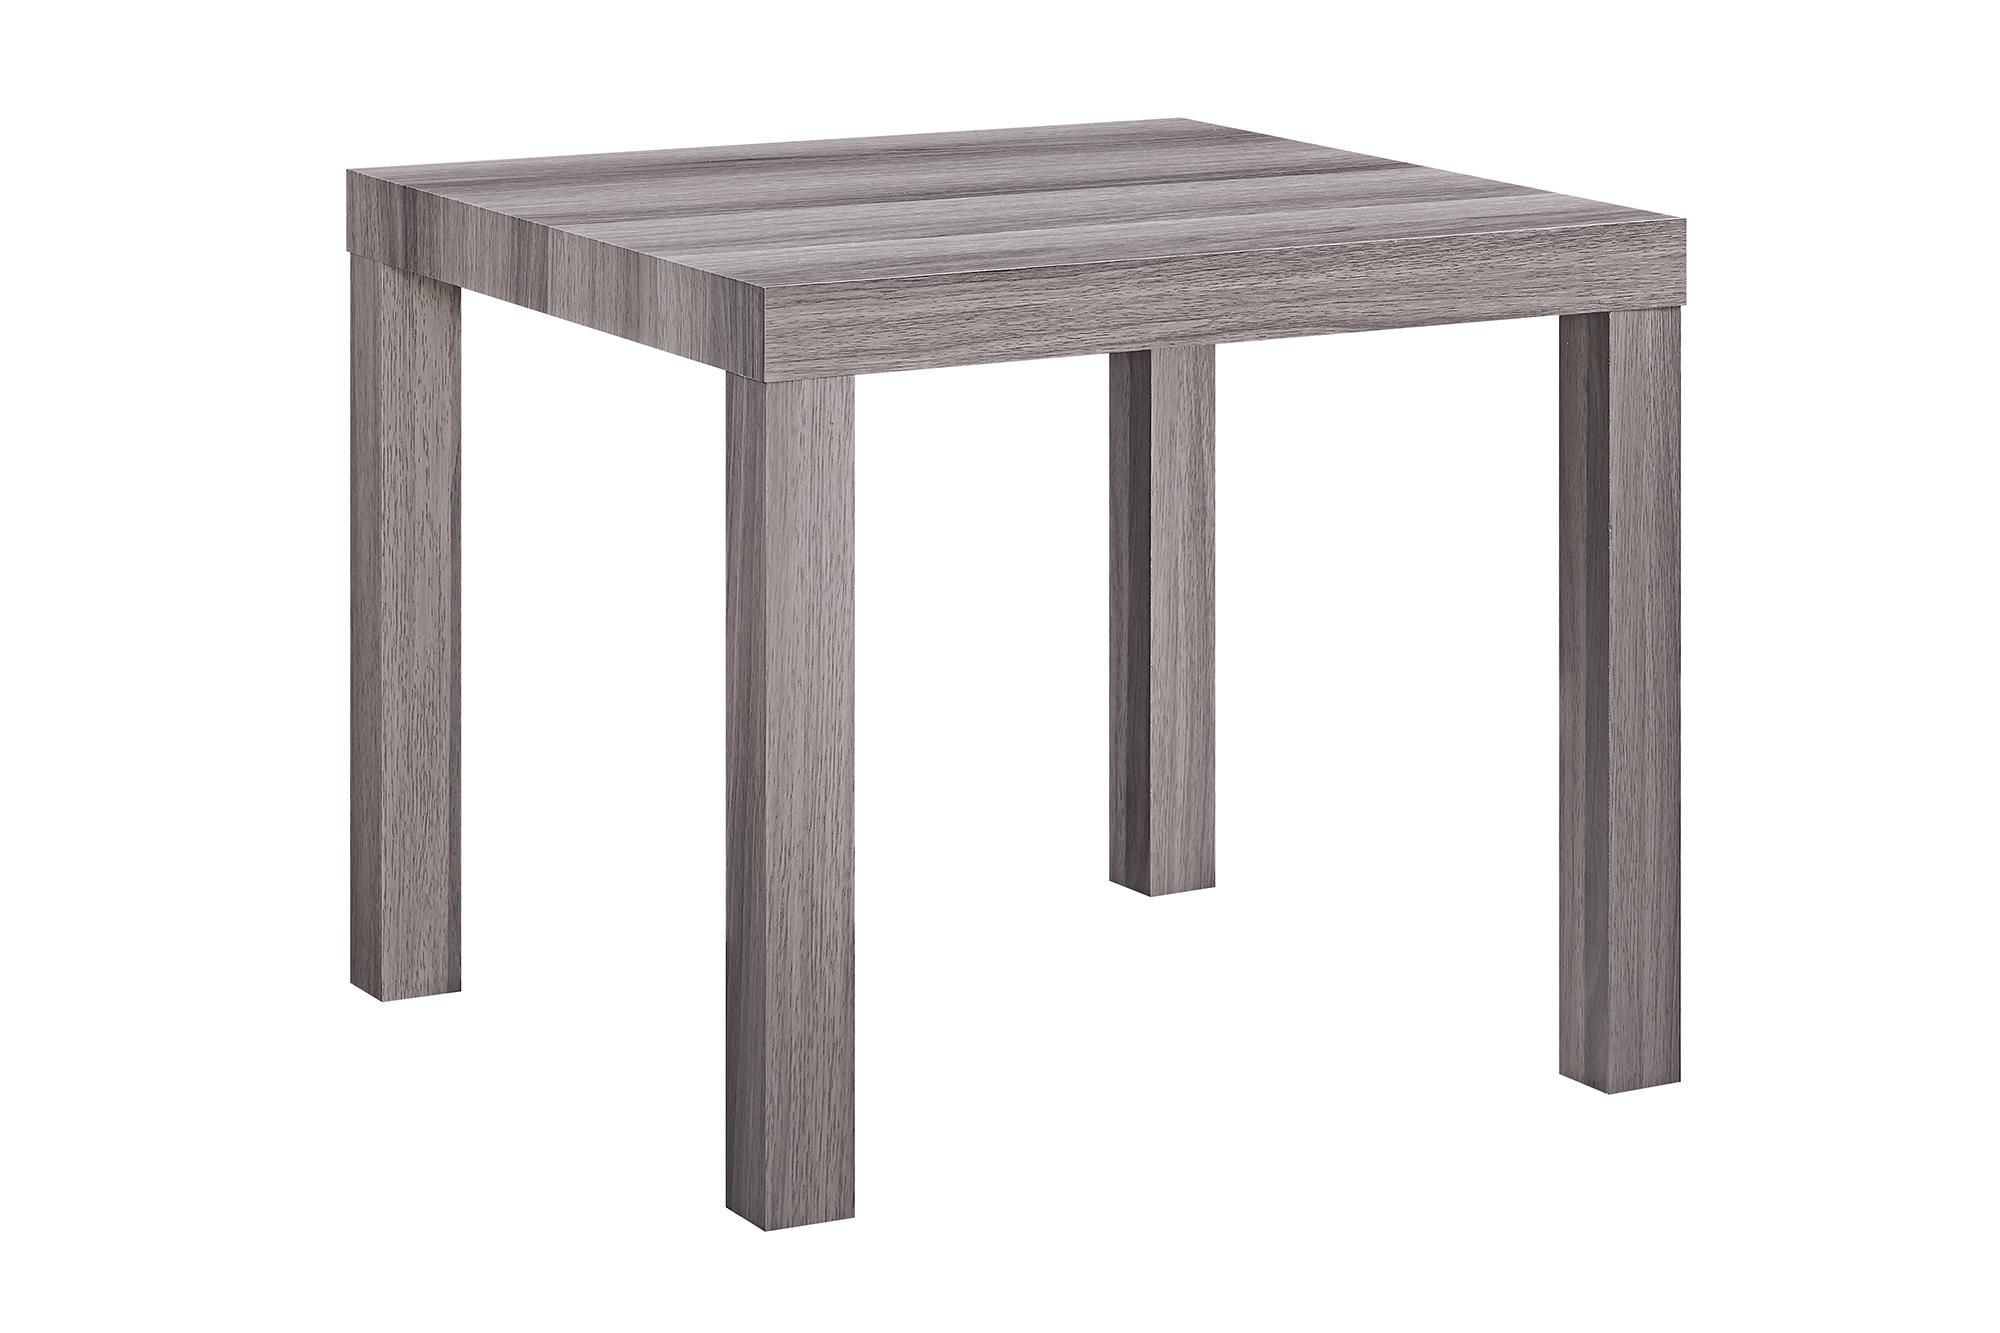 Mainstays Parsons Square End Table Multiple Colors Ad Square Spon Parsons Mainstays In 2020 End Tables Mainstays Table